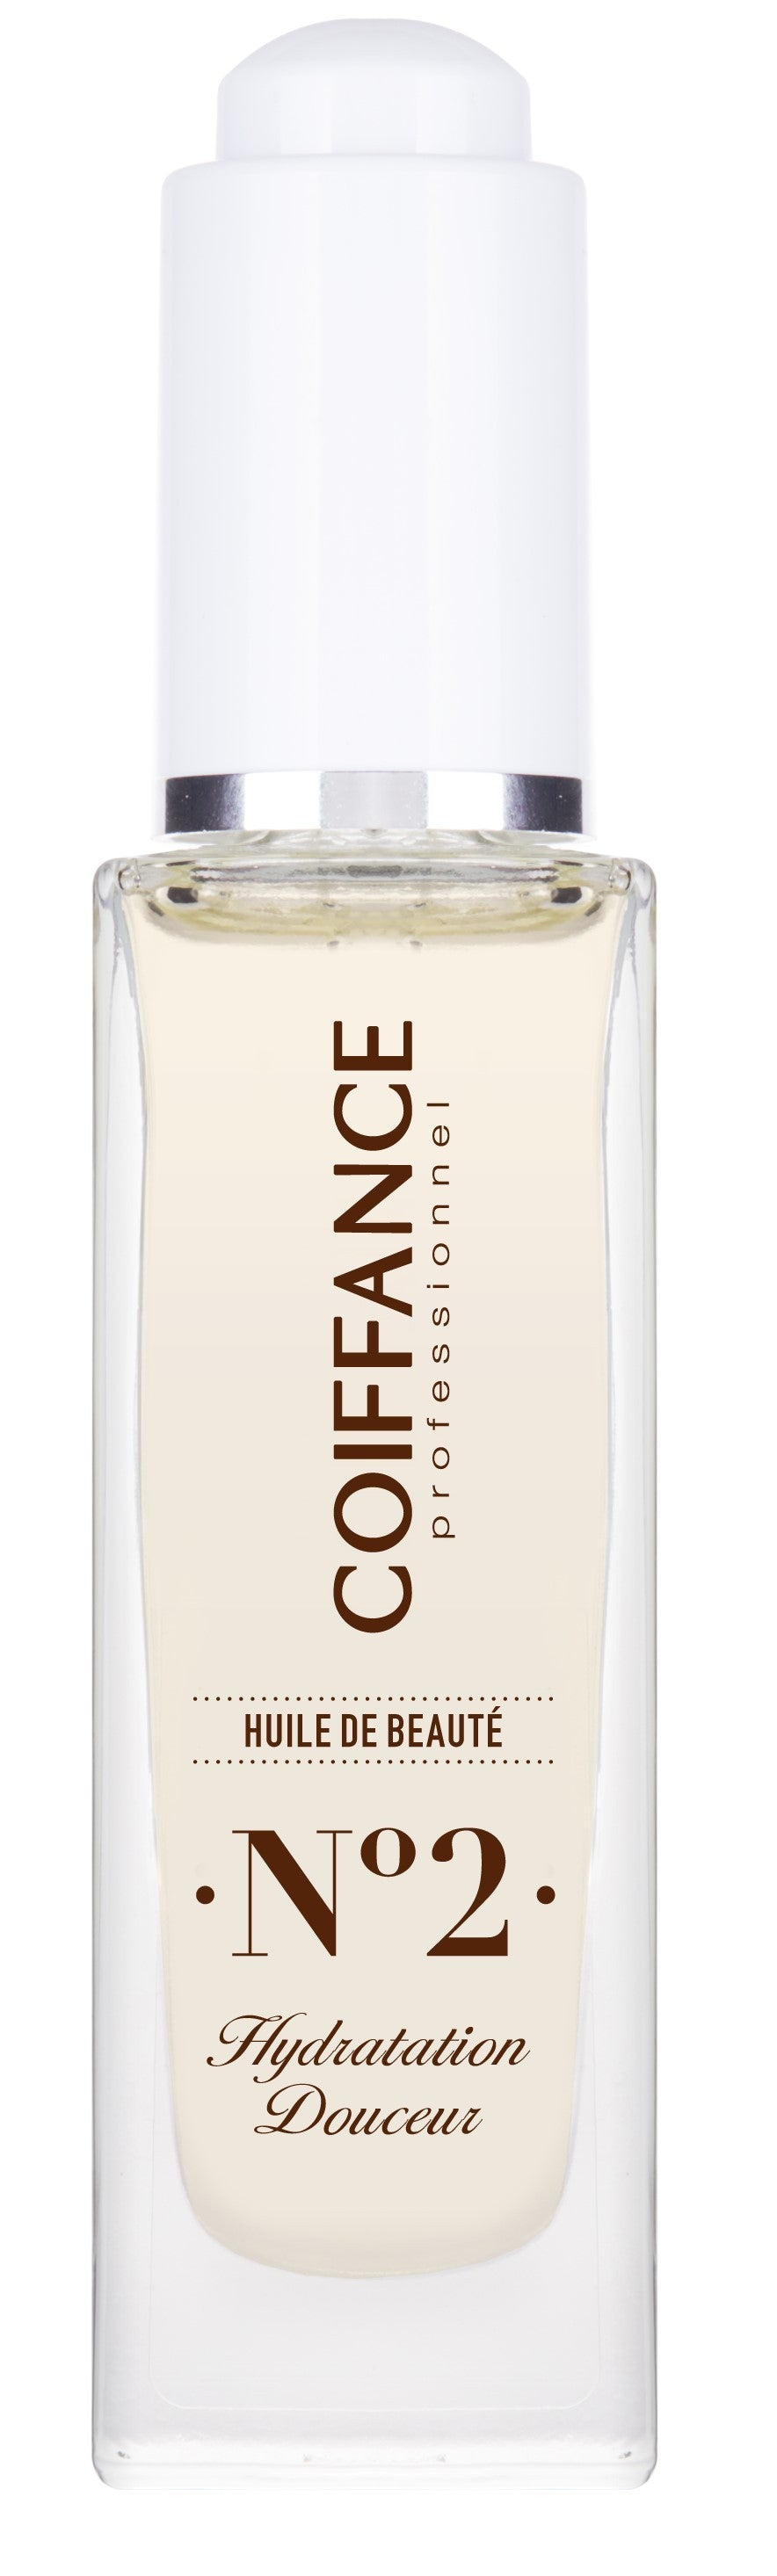 Coiffance - beauty oil - N°2